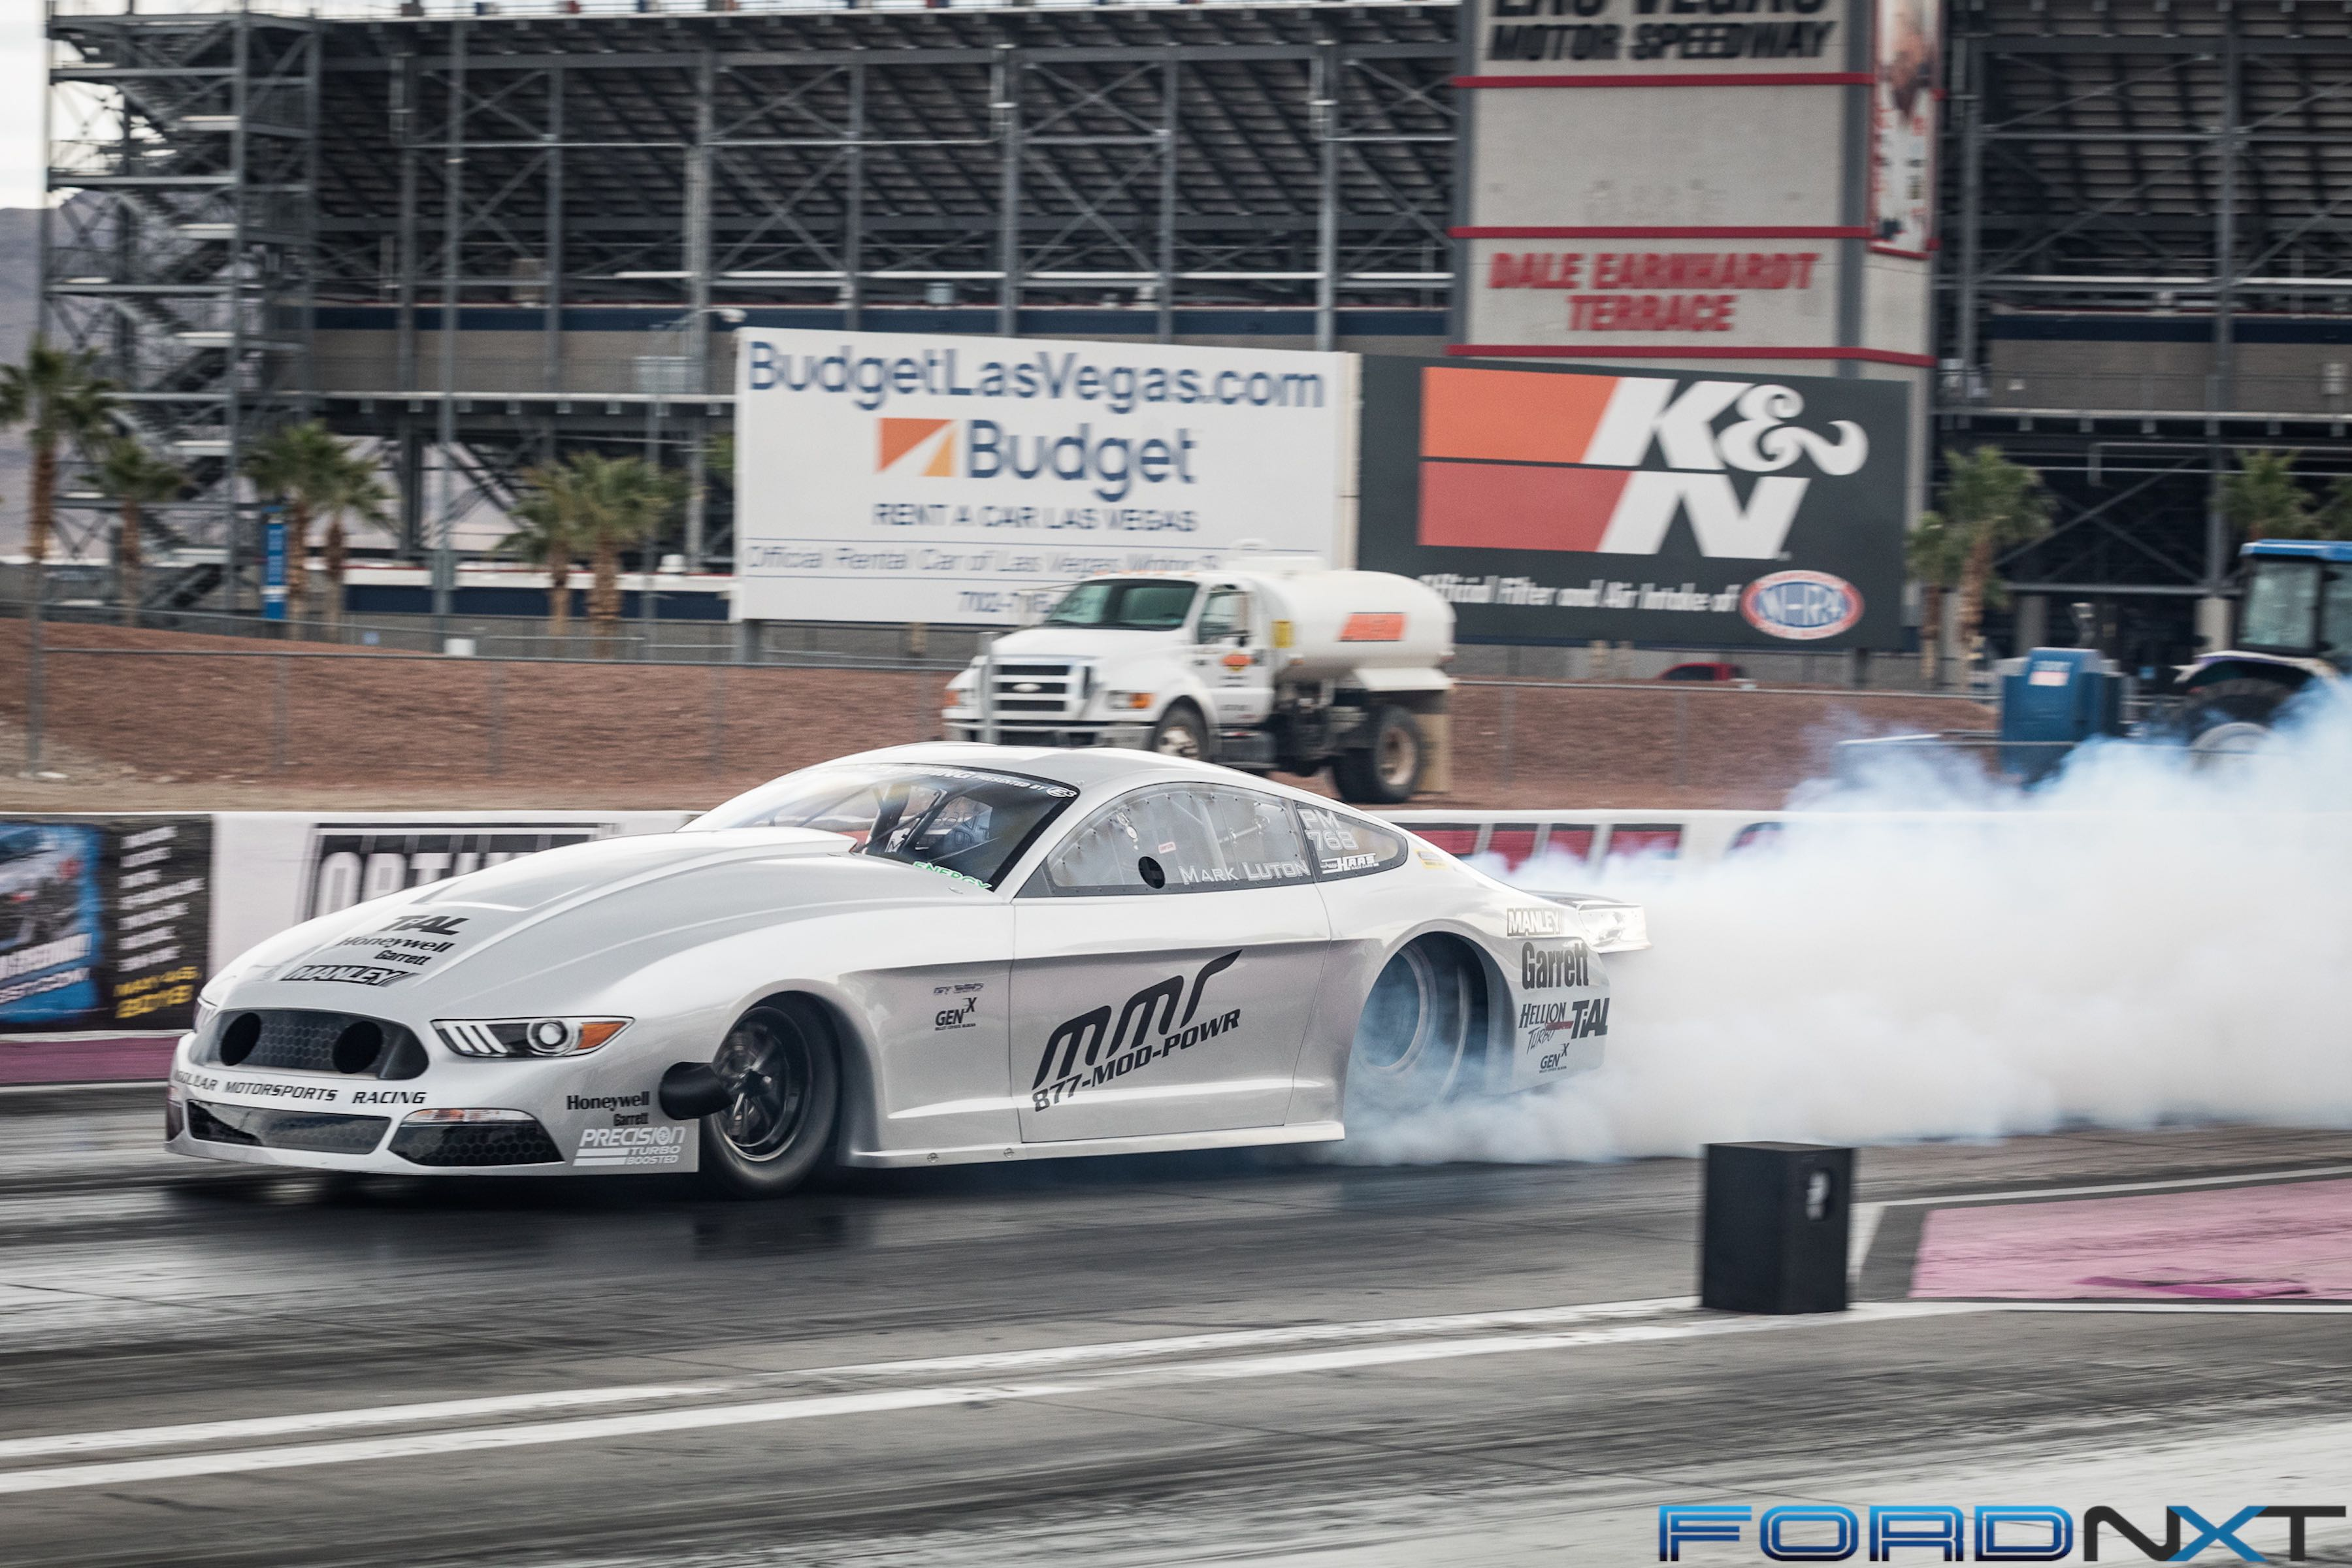 MMR Blasts Into The Fives With A Twin-Turbo Coyote